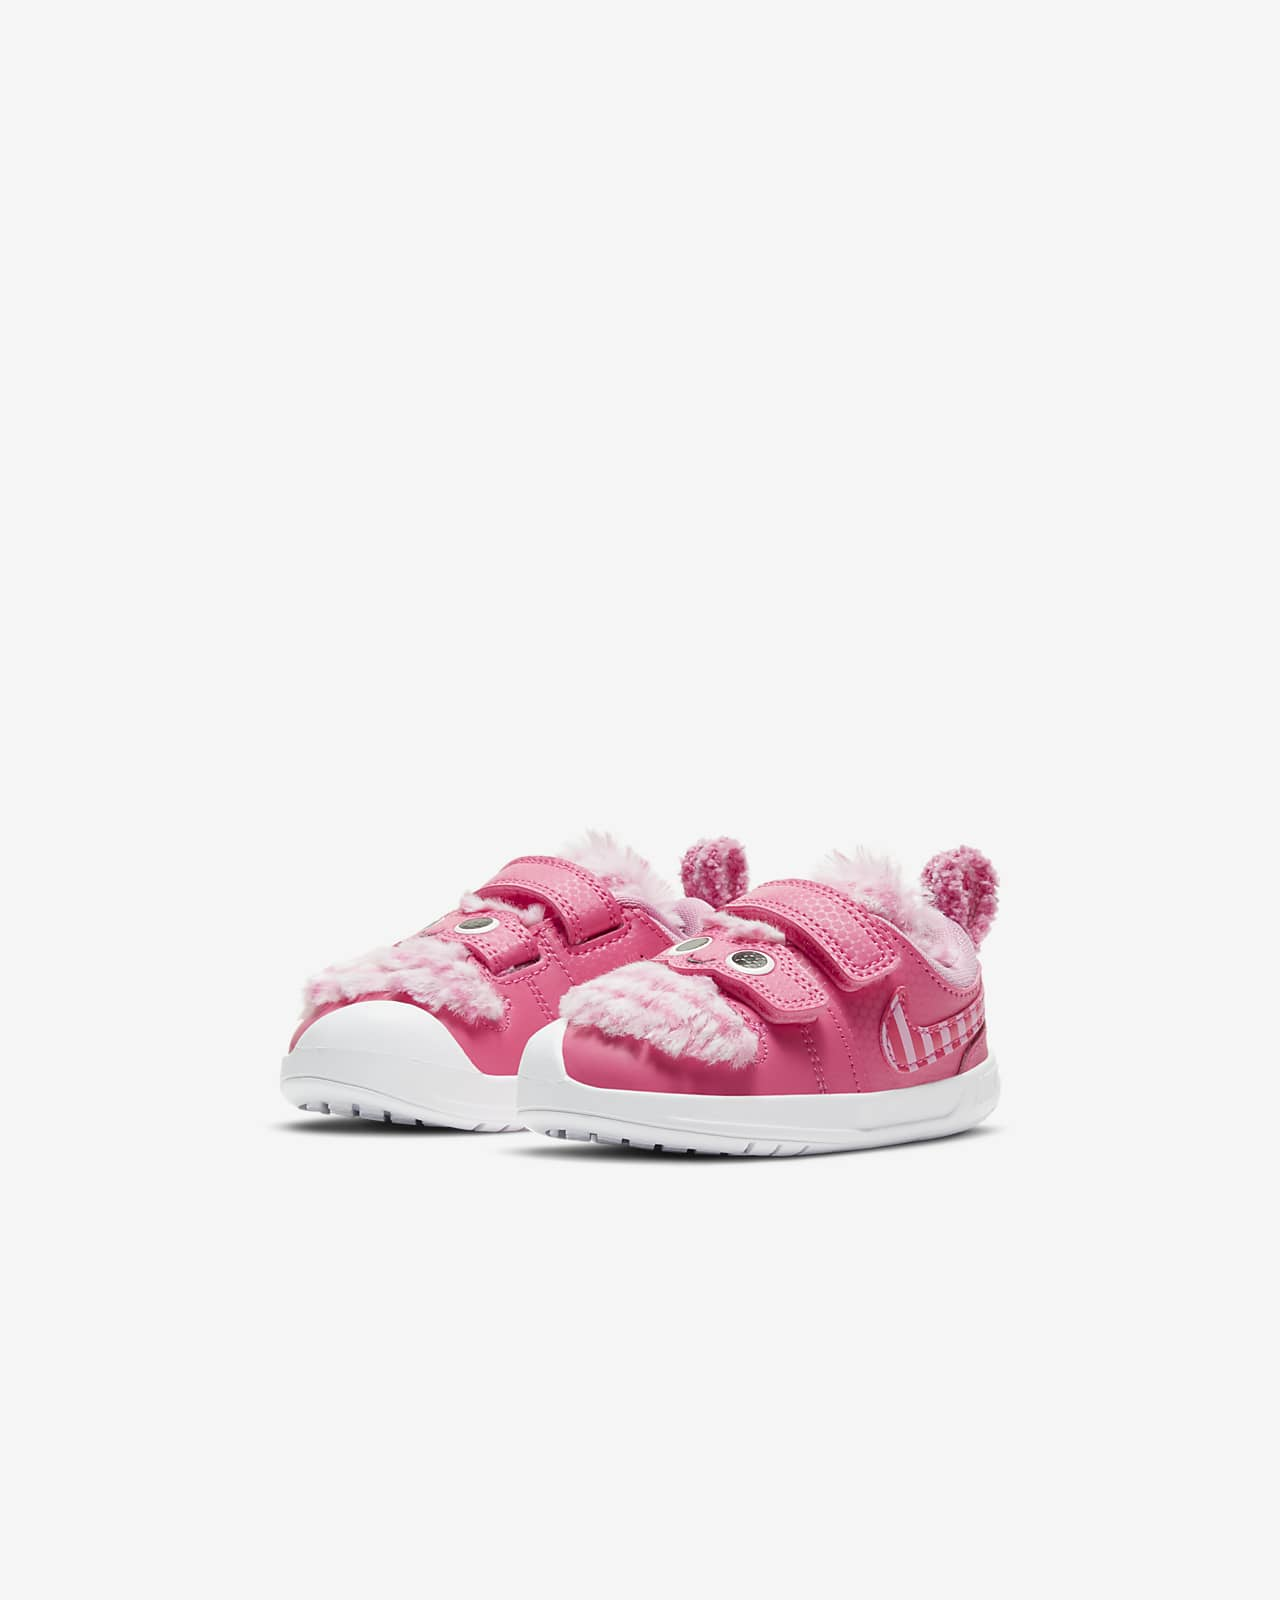 5 year baby shoes